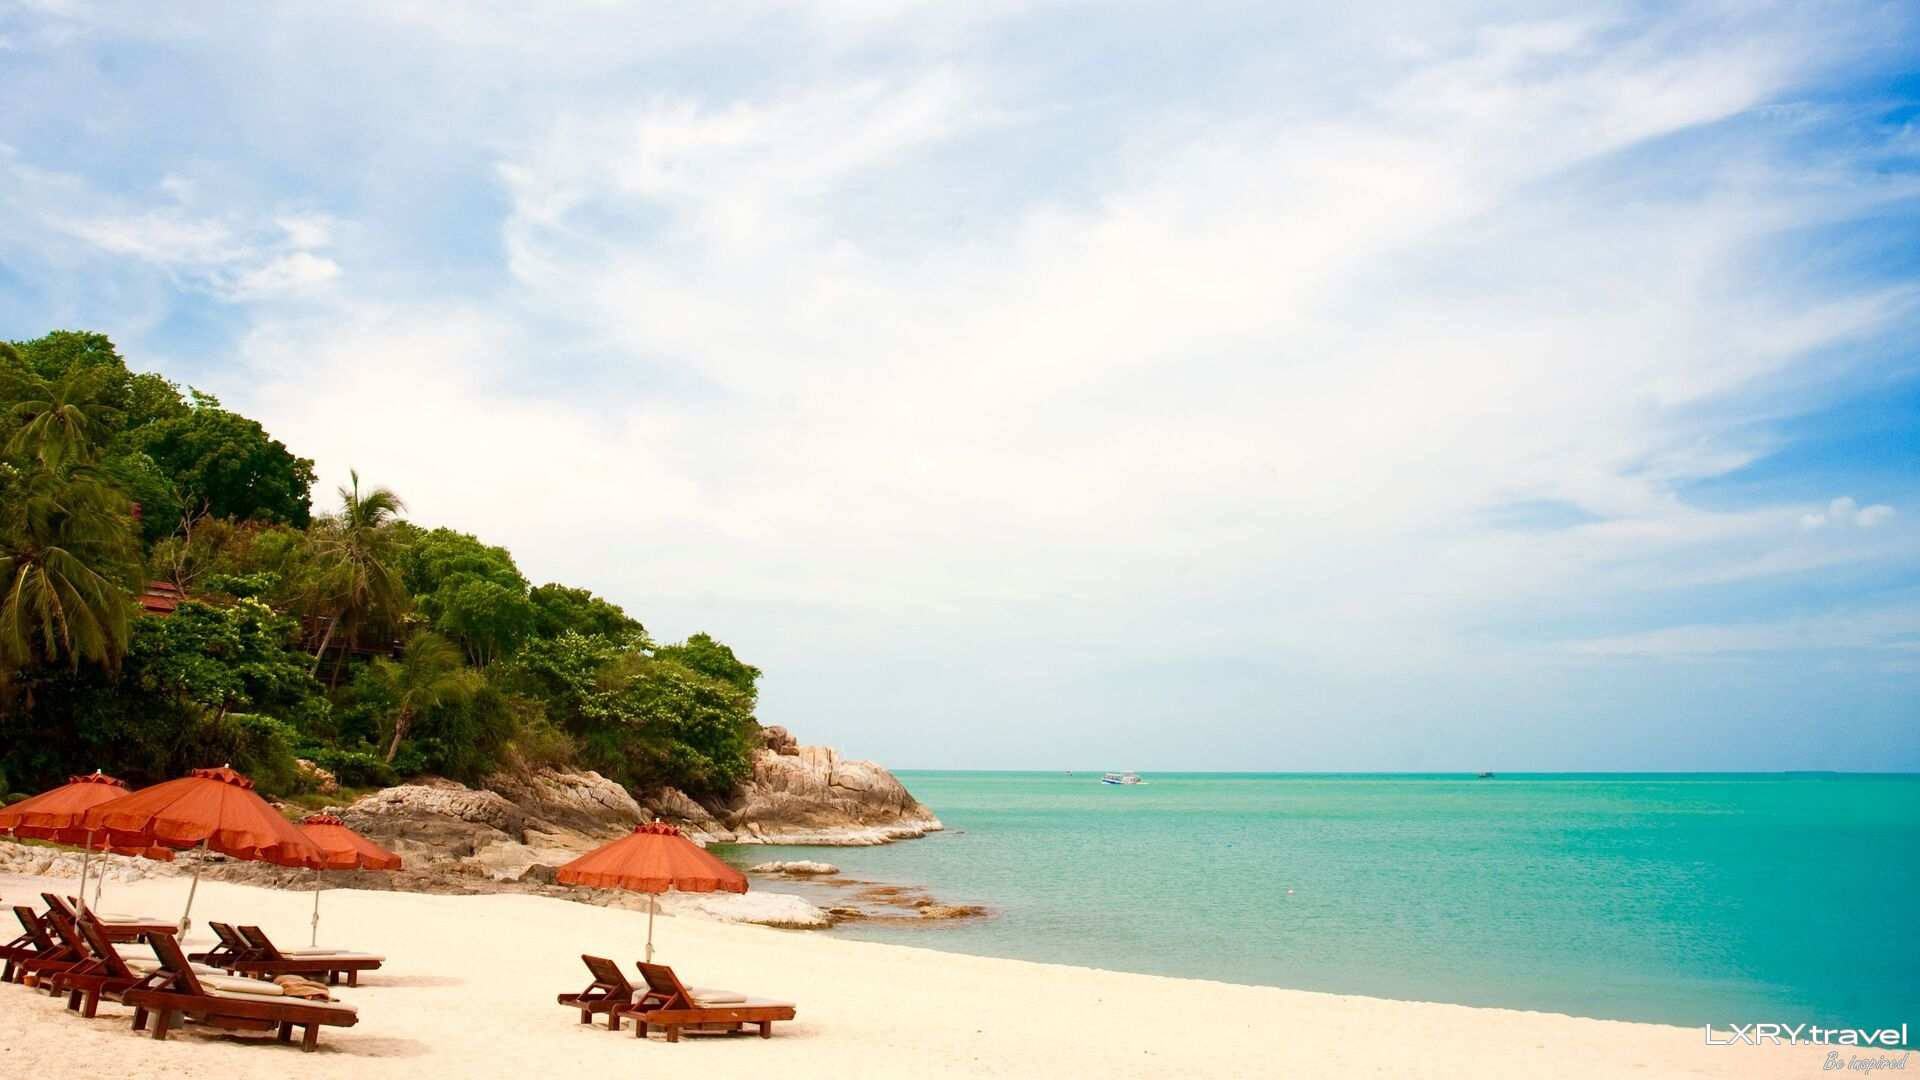 The Tongsai Bay, Koh Samui 20/44